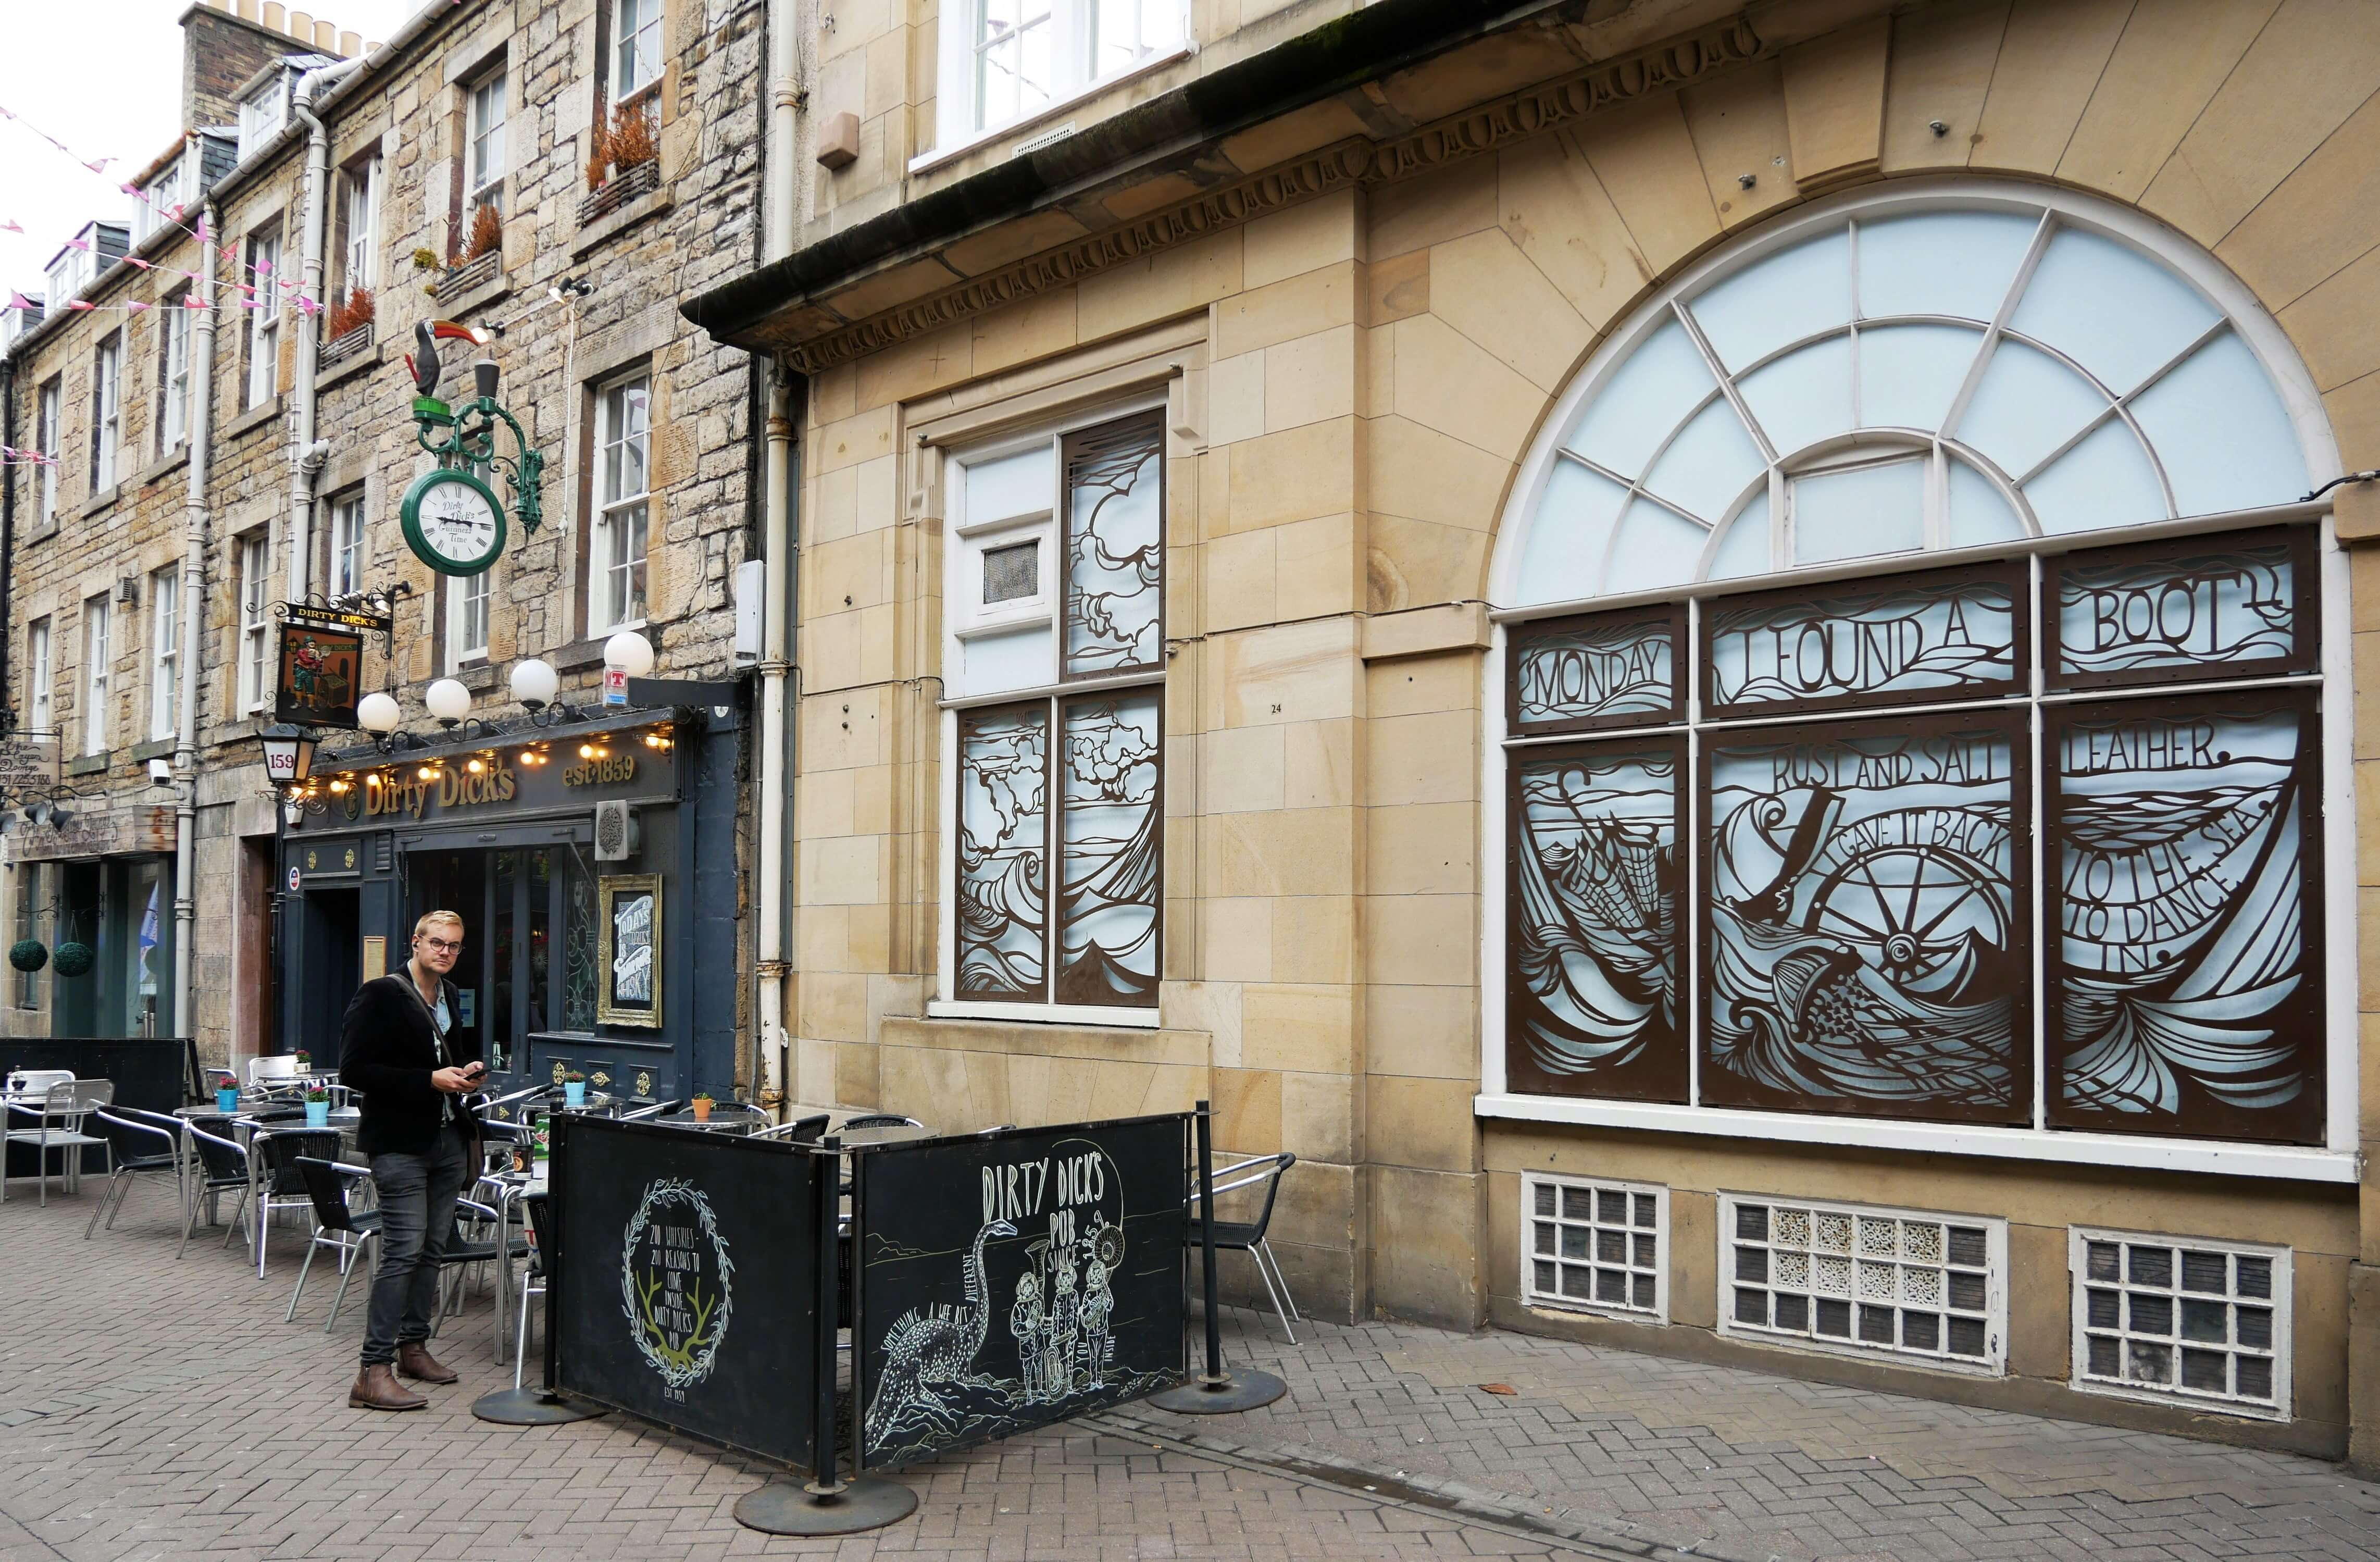 Edinburgh's Rose Street, where Orkney Islands poet GMB and his cronies used to hang out.